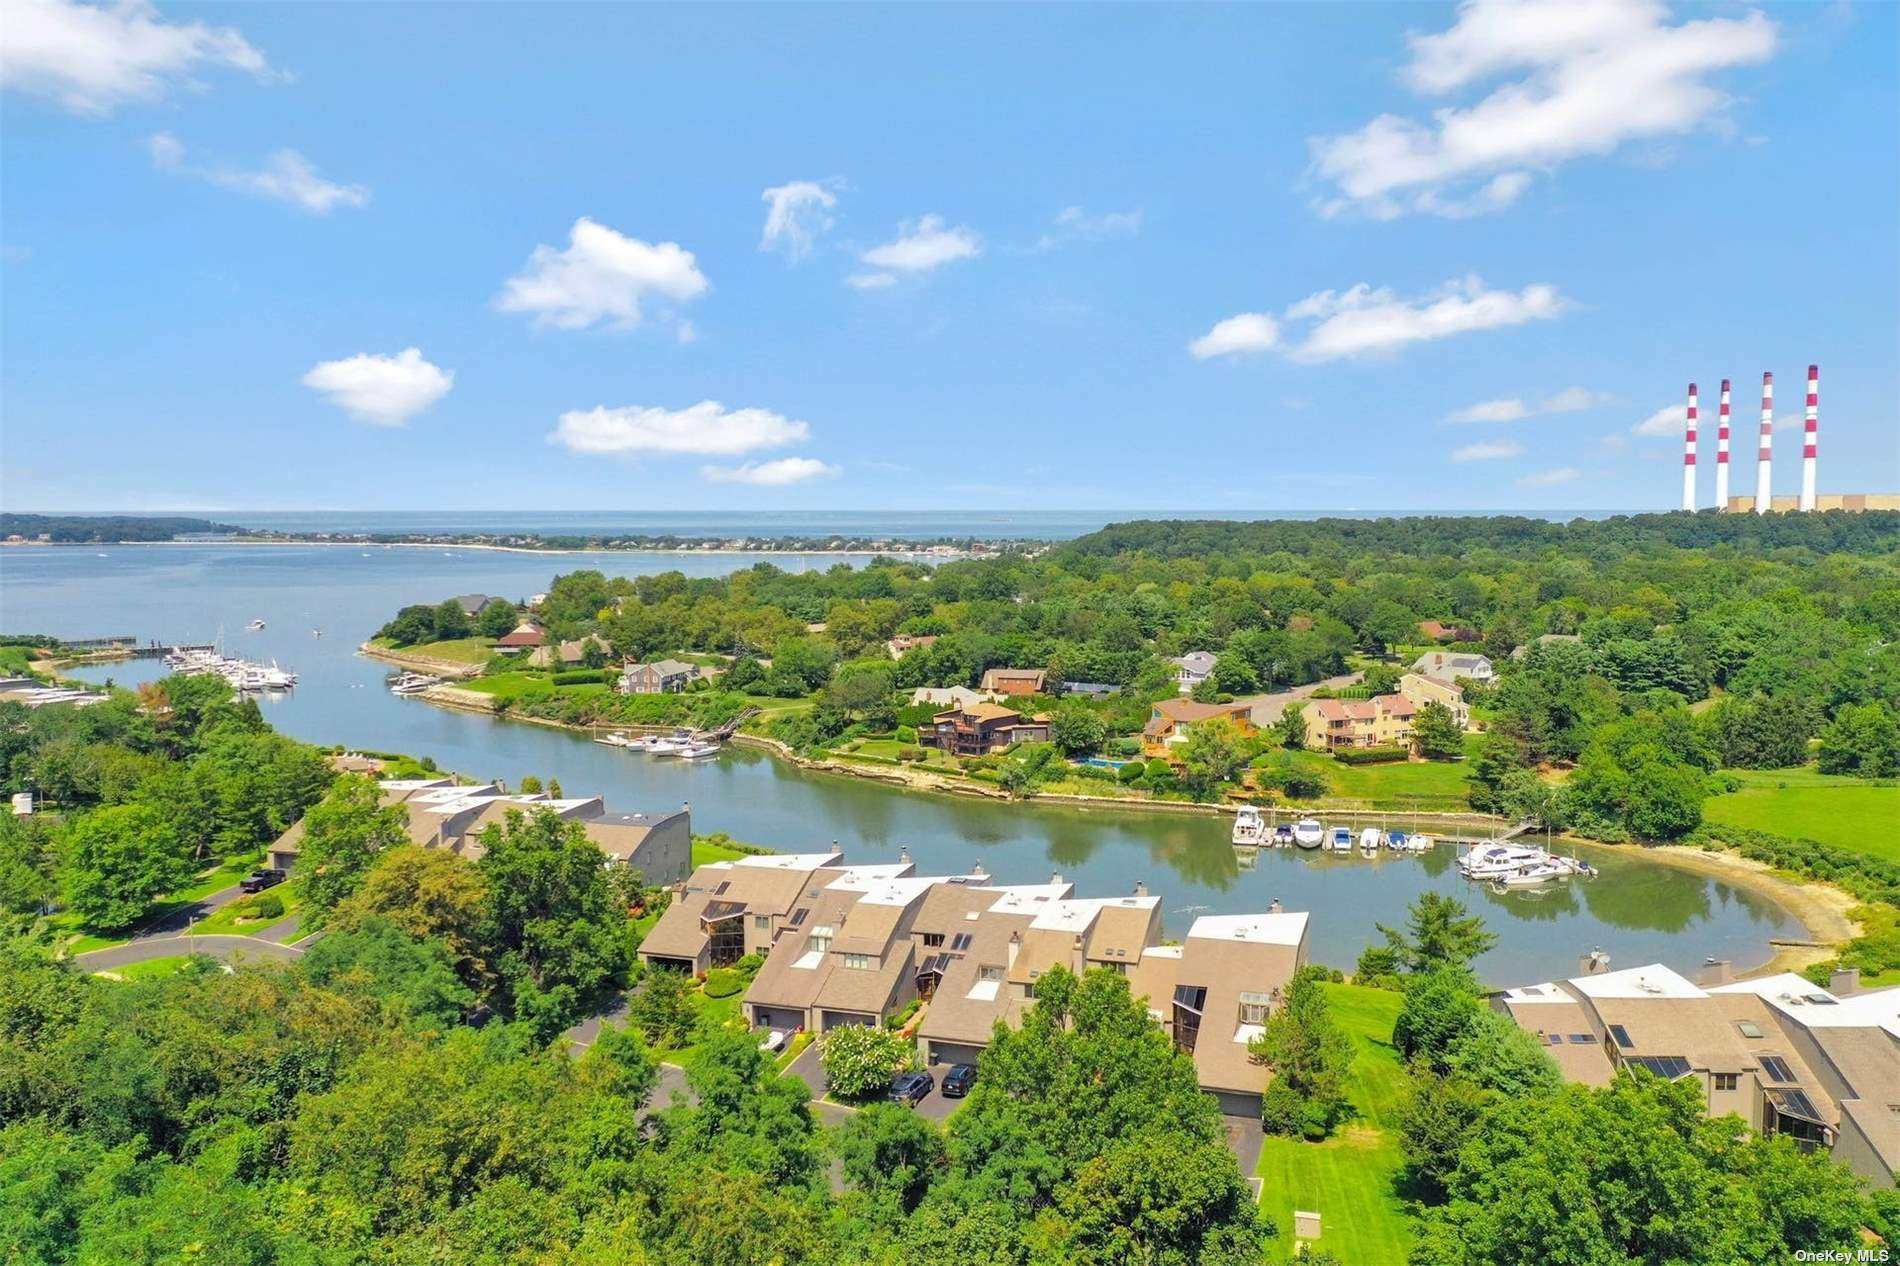 Spectacular, Completely Renovated, Townhouse in Desirable Waterfront Community. This home provides top of the line finishes in every room with attention to detail. Custom moldings, Beautiful hardwood floors throughout, The open floor plan allows for incredible views of Northport Bay from every floor. Enjoy your morning coffee on the the private balcony off the master bedroom. This Community offers the feel of living like you are on vacation every day with its Gunite Pool, Tennis Courts, Private Marina W/ deeded boat slip and meticulously manicured grounds. Walk to restaurants, shops, and parks in historical Northport Village. This Home has ir all and is a MUST SEE!